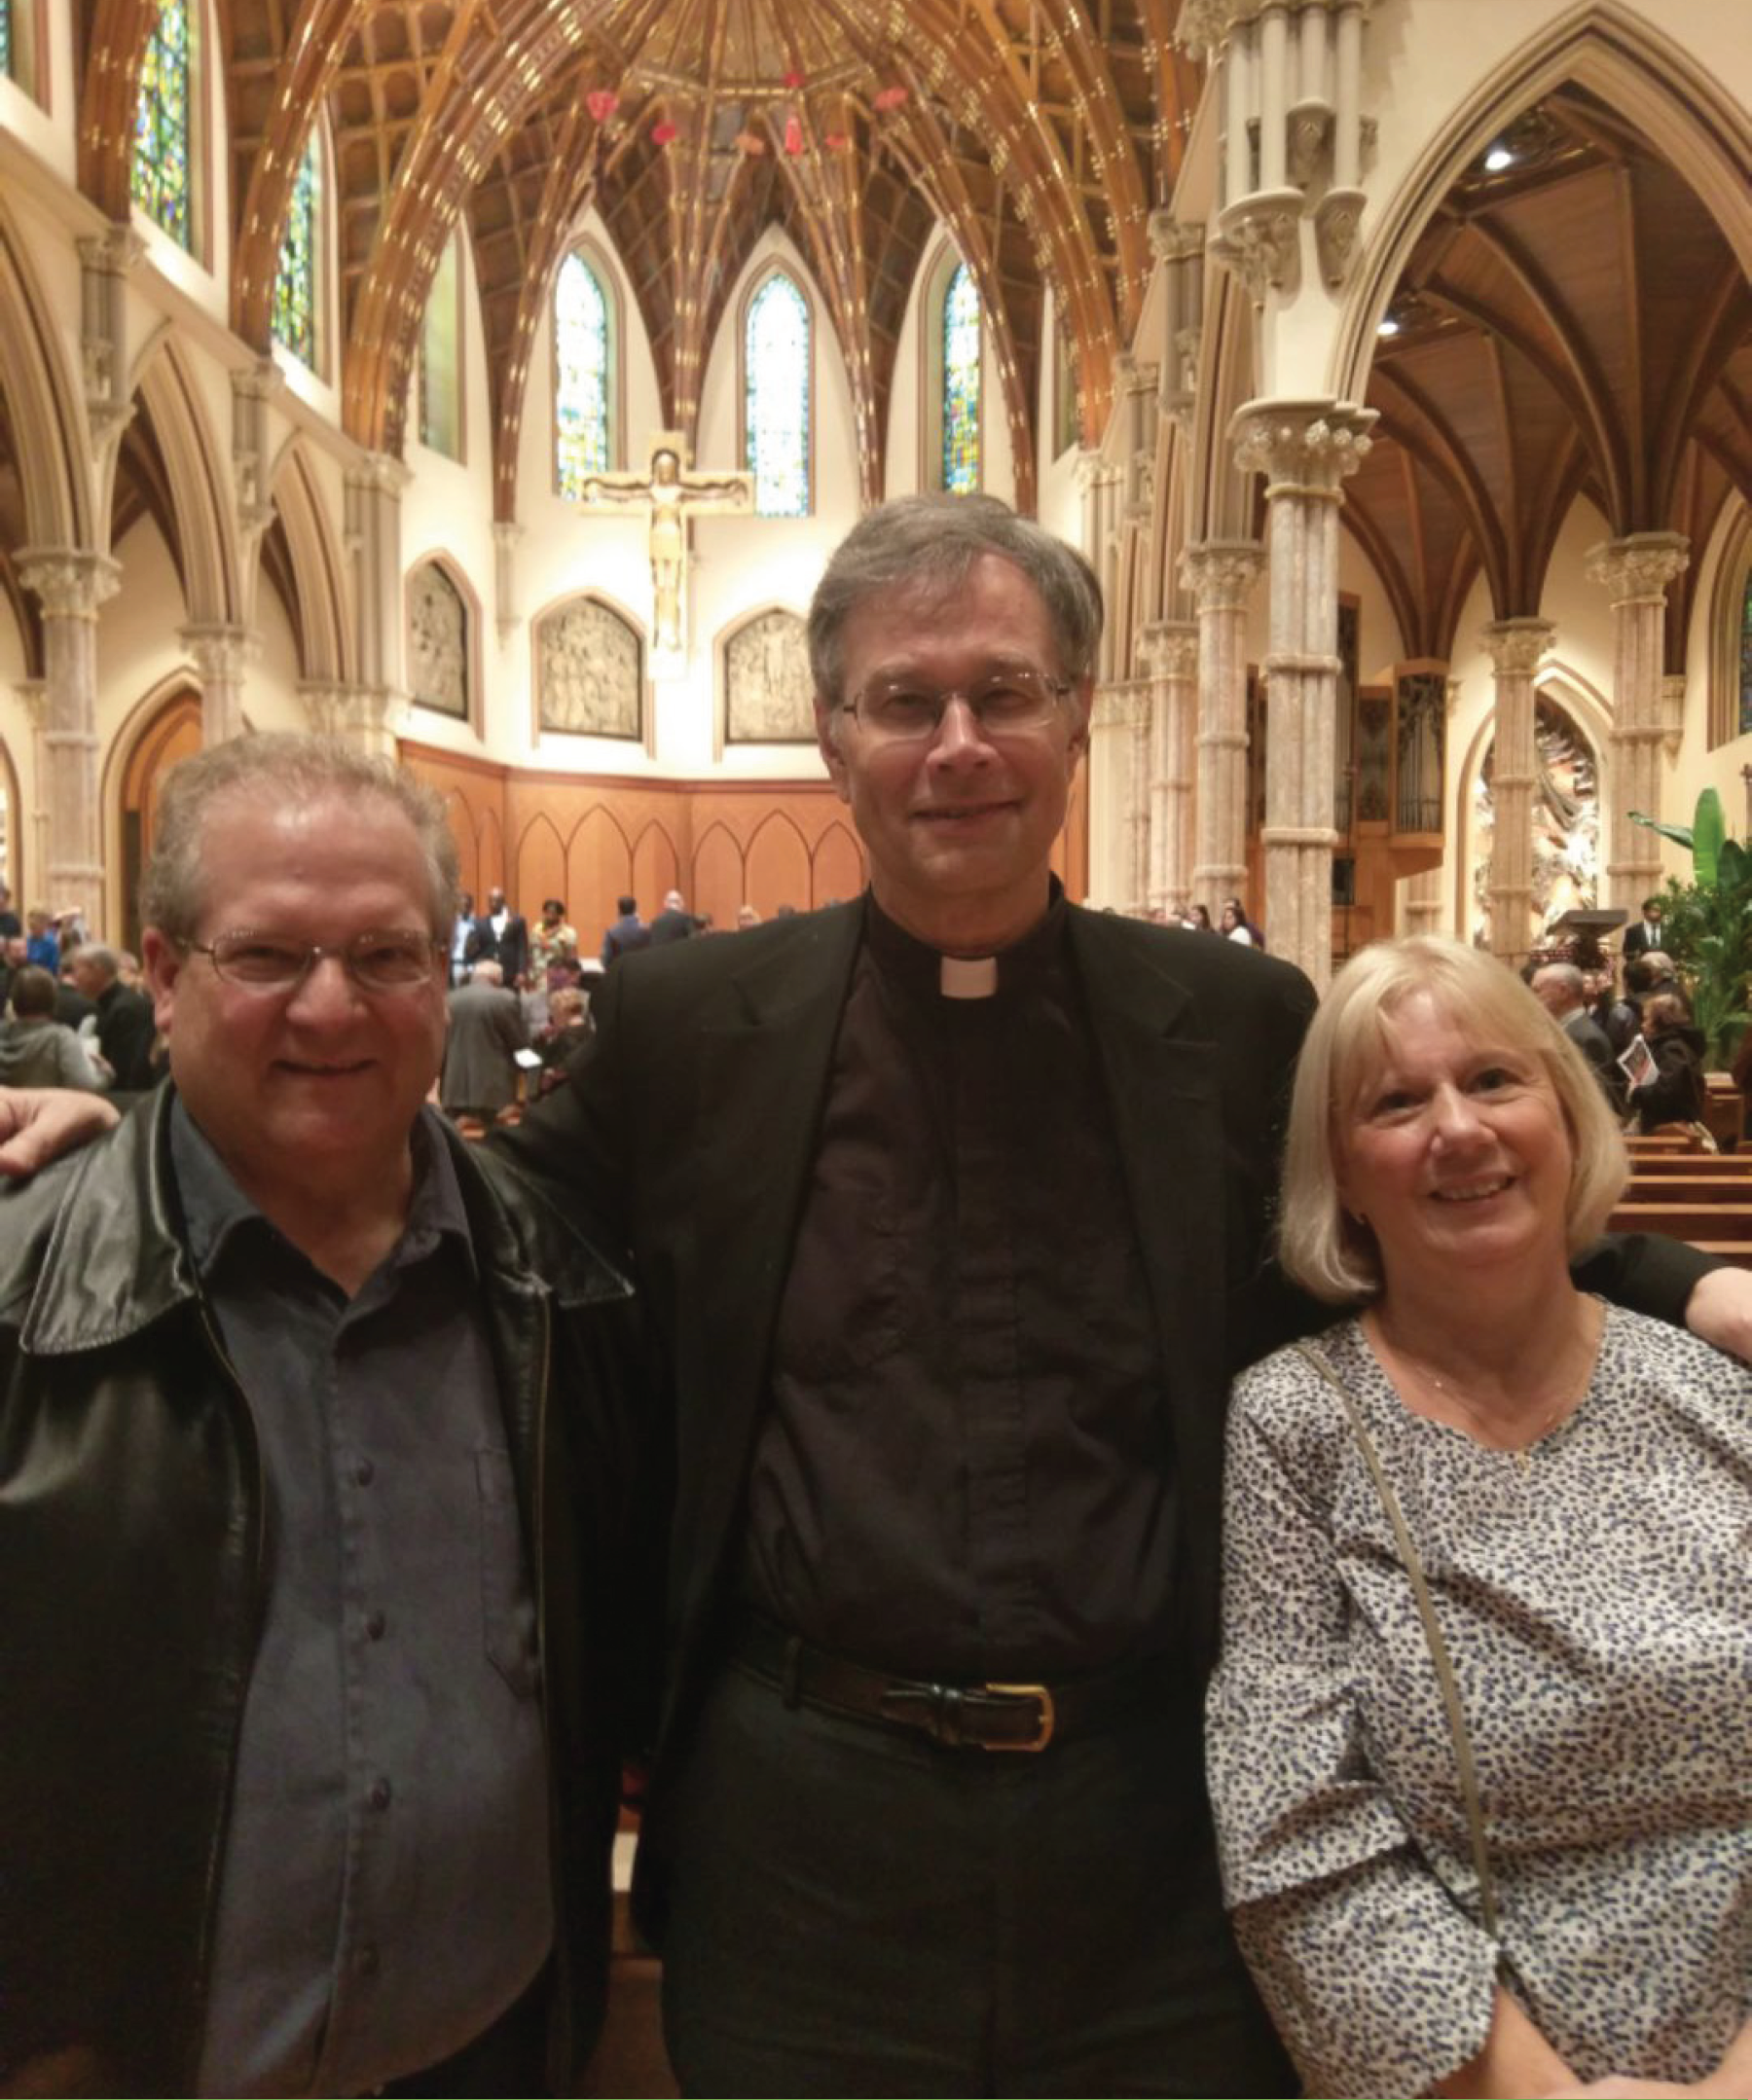 Joe Minneci, Fr. Steve, & Kathy Minneci at Holy Name Cathedral